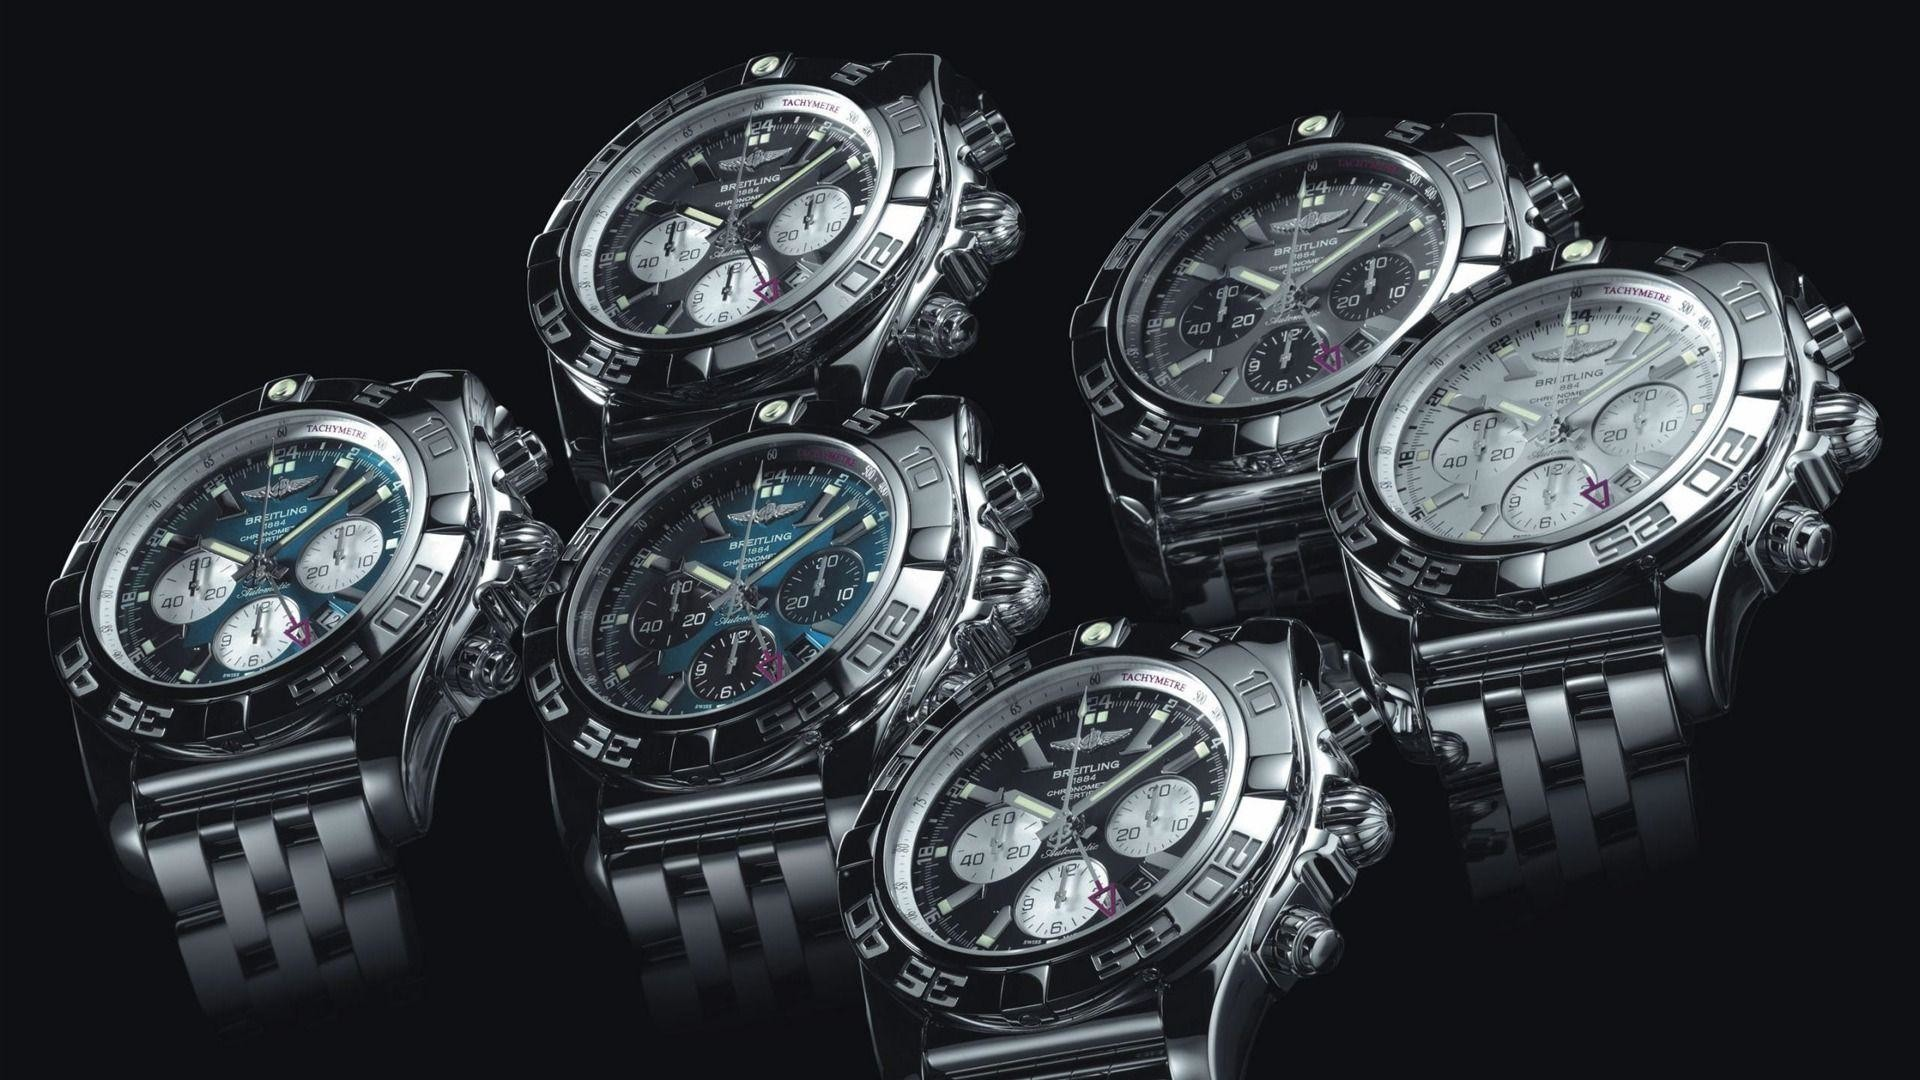 1920x1080 Clock Watch Breitling Chronomat-Fashion watches wallpaper .